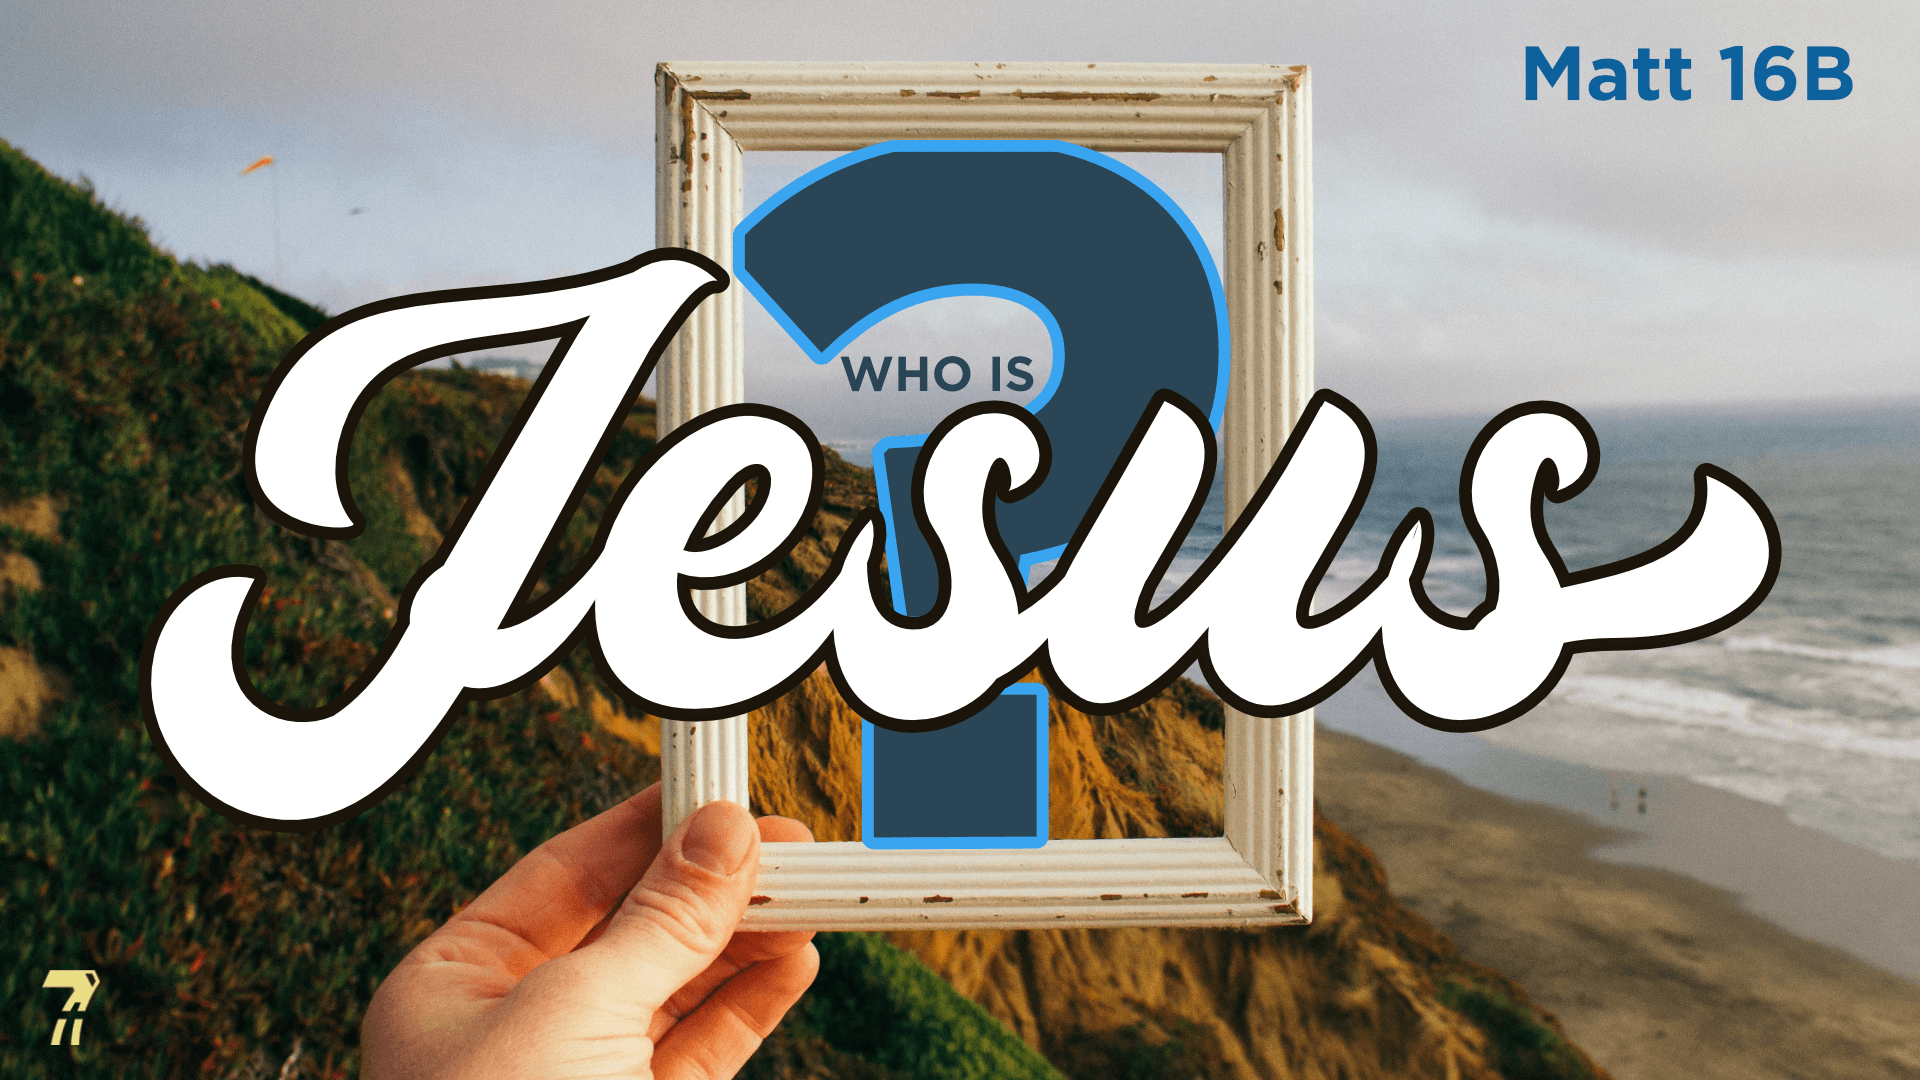 Matthew 16b – Who is Jesus?